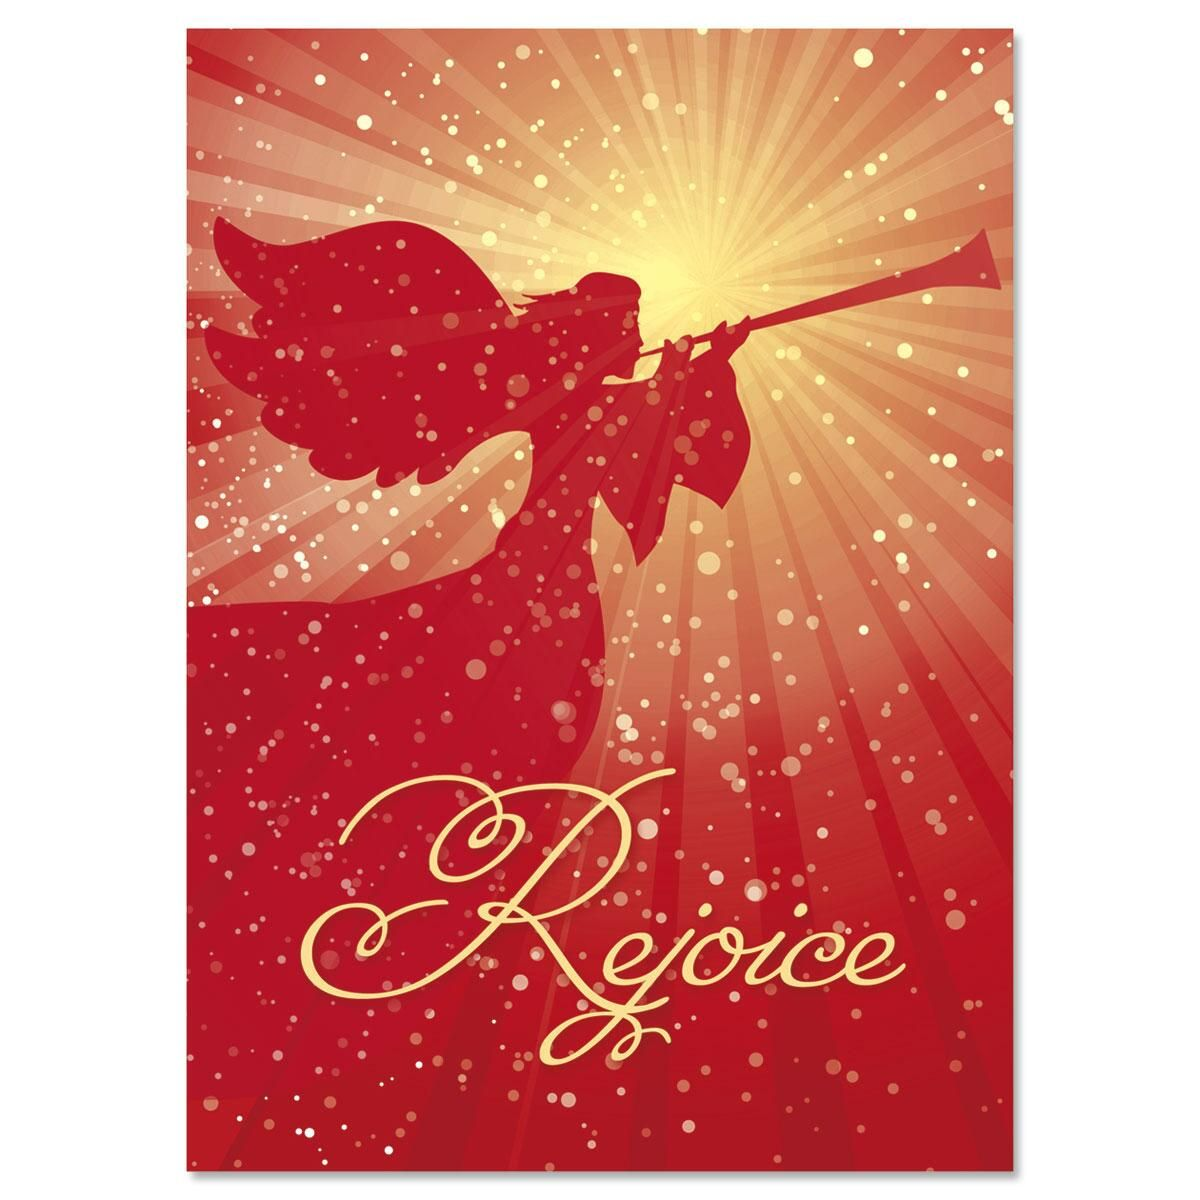 Rejoice Nonpersonalized Christmas Cards - Set of 18